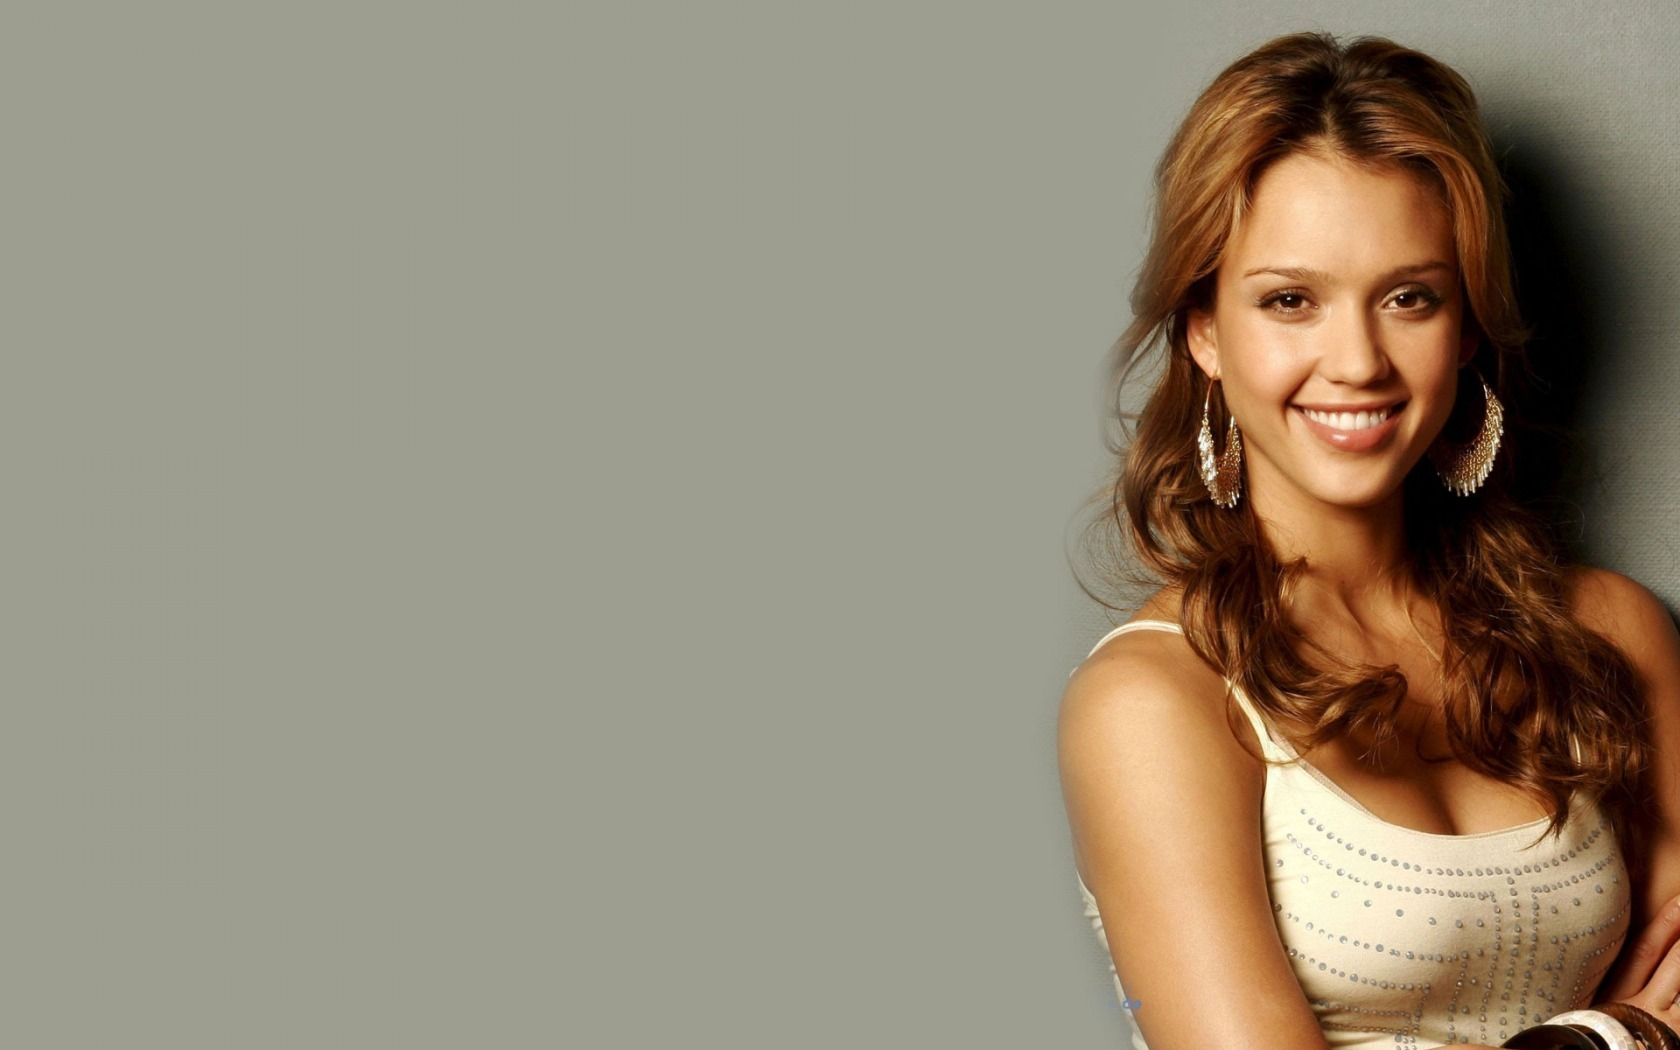 celebrity wallpapers 28367